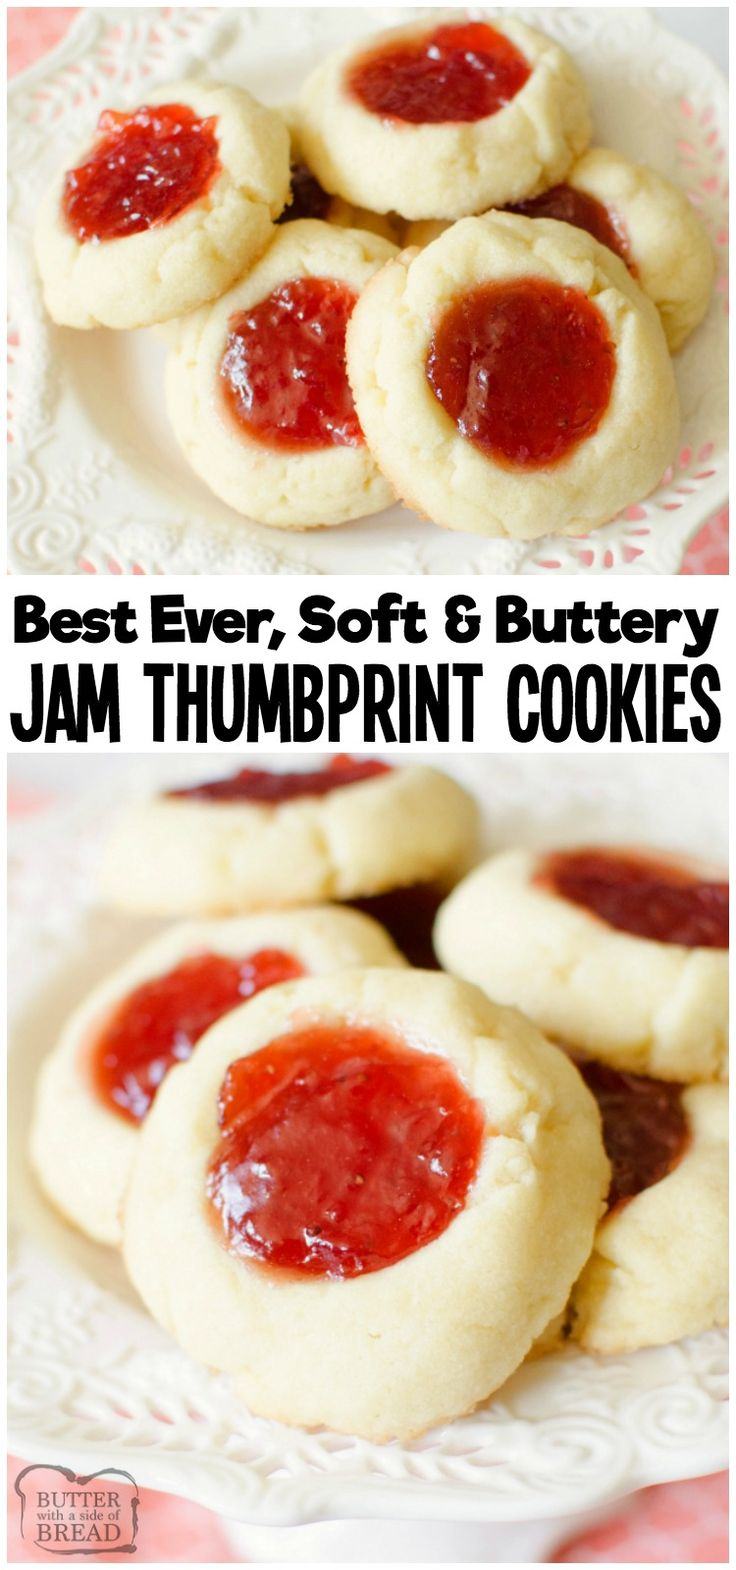 Easy recipe for Soft Jam Thumbprint Cookies perfect for the holidays! Buttery co...